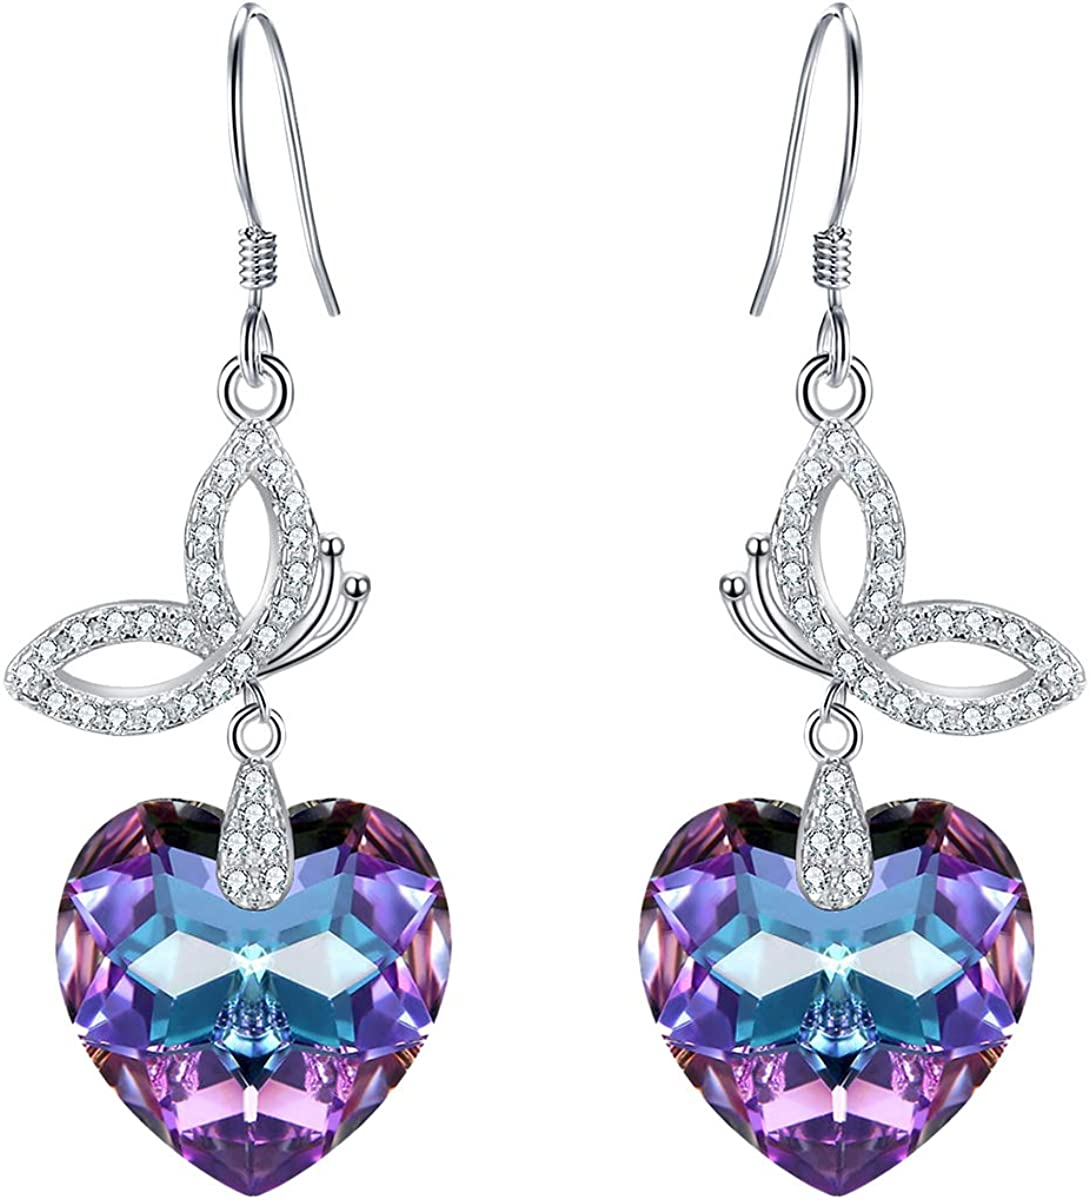 EleQueen 925 Sterling Silver Max 68% OFF CZ French Hook Max 84% OFF Butterfly Love Heart